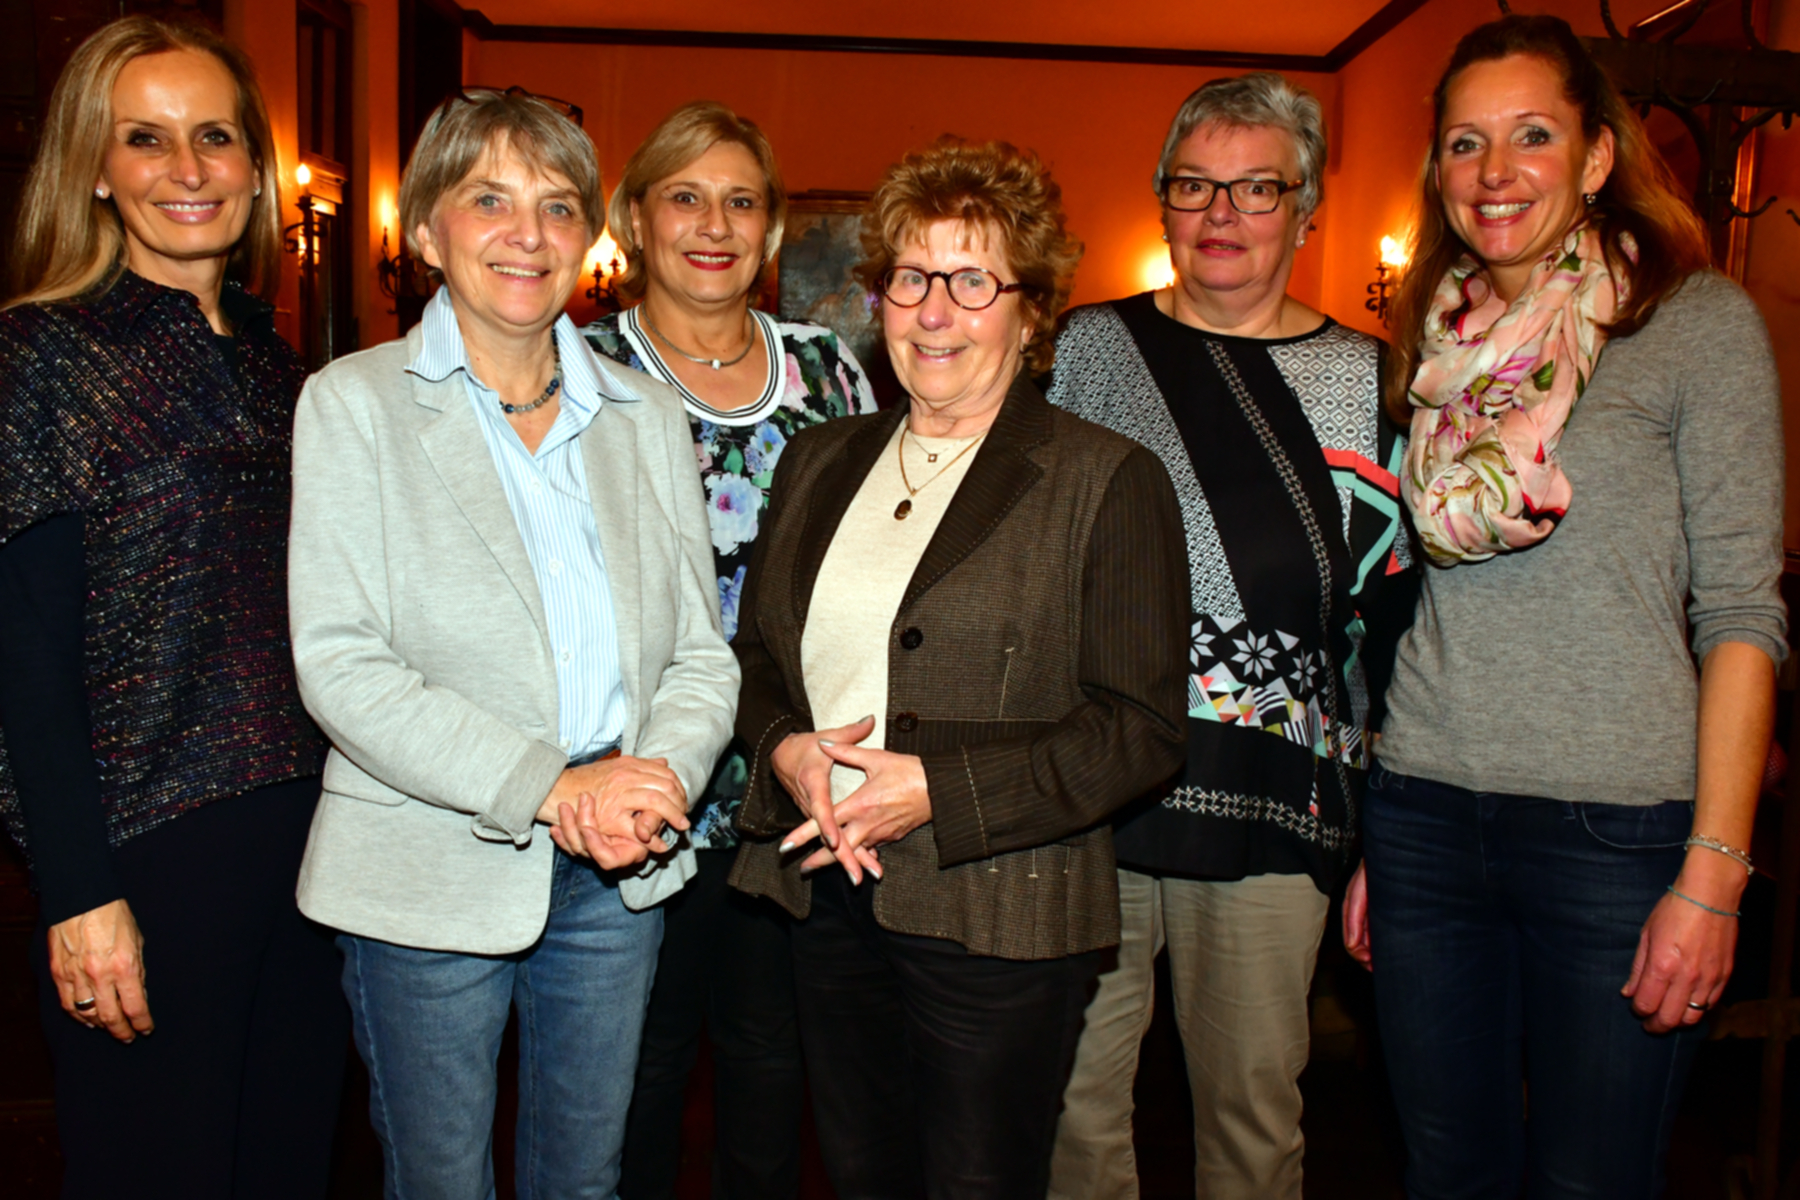 Anna Lederer, Monika Weiss, Conny Schmalbach(hinten), Gisela Timpe-Rottwilm (vorne), Renate Marx, Anke Conti Mica